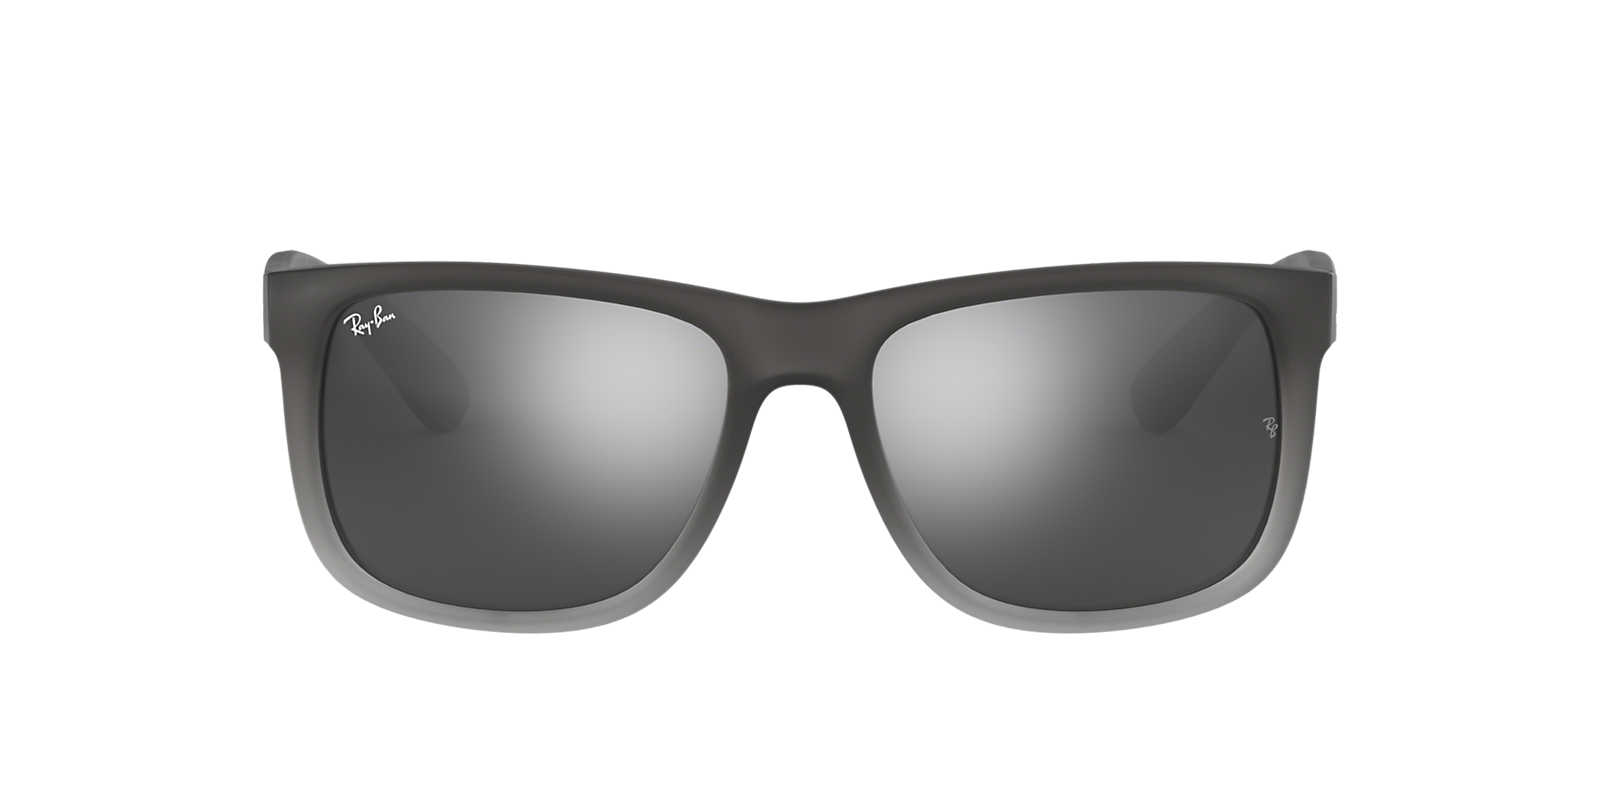 Ray Ban Glasses with Many New Features